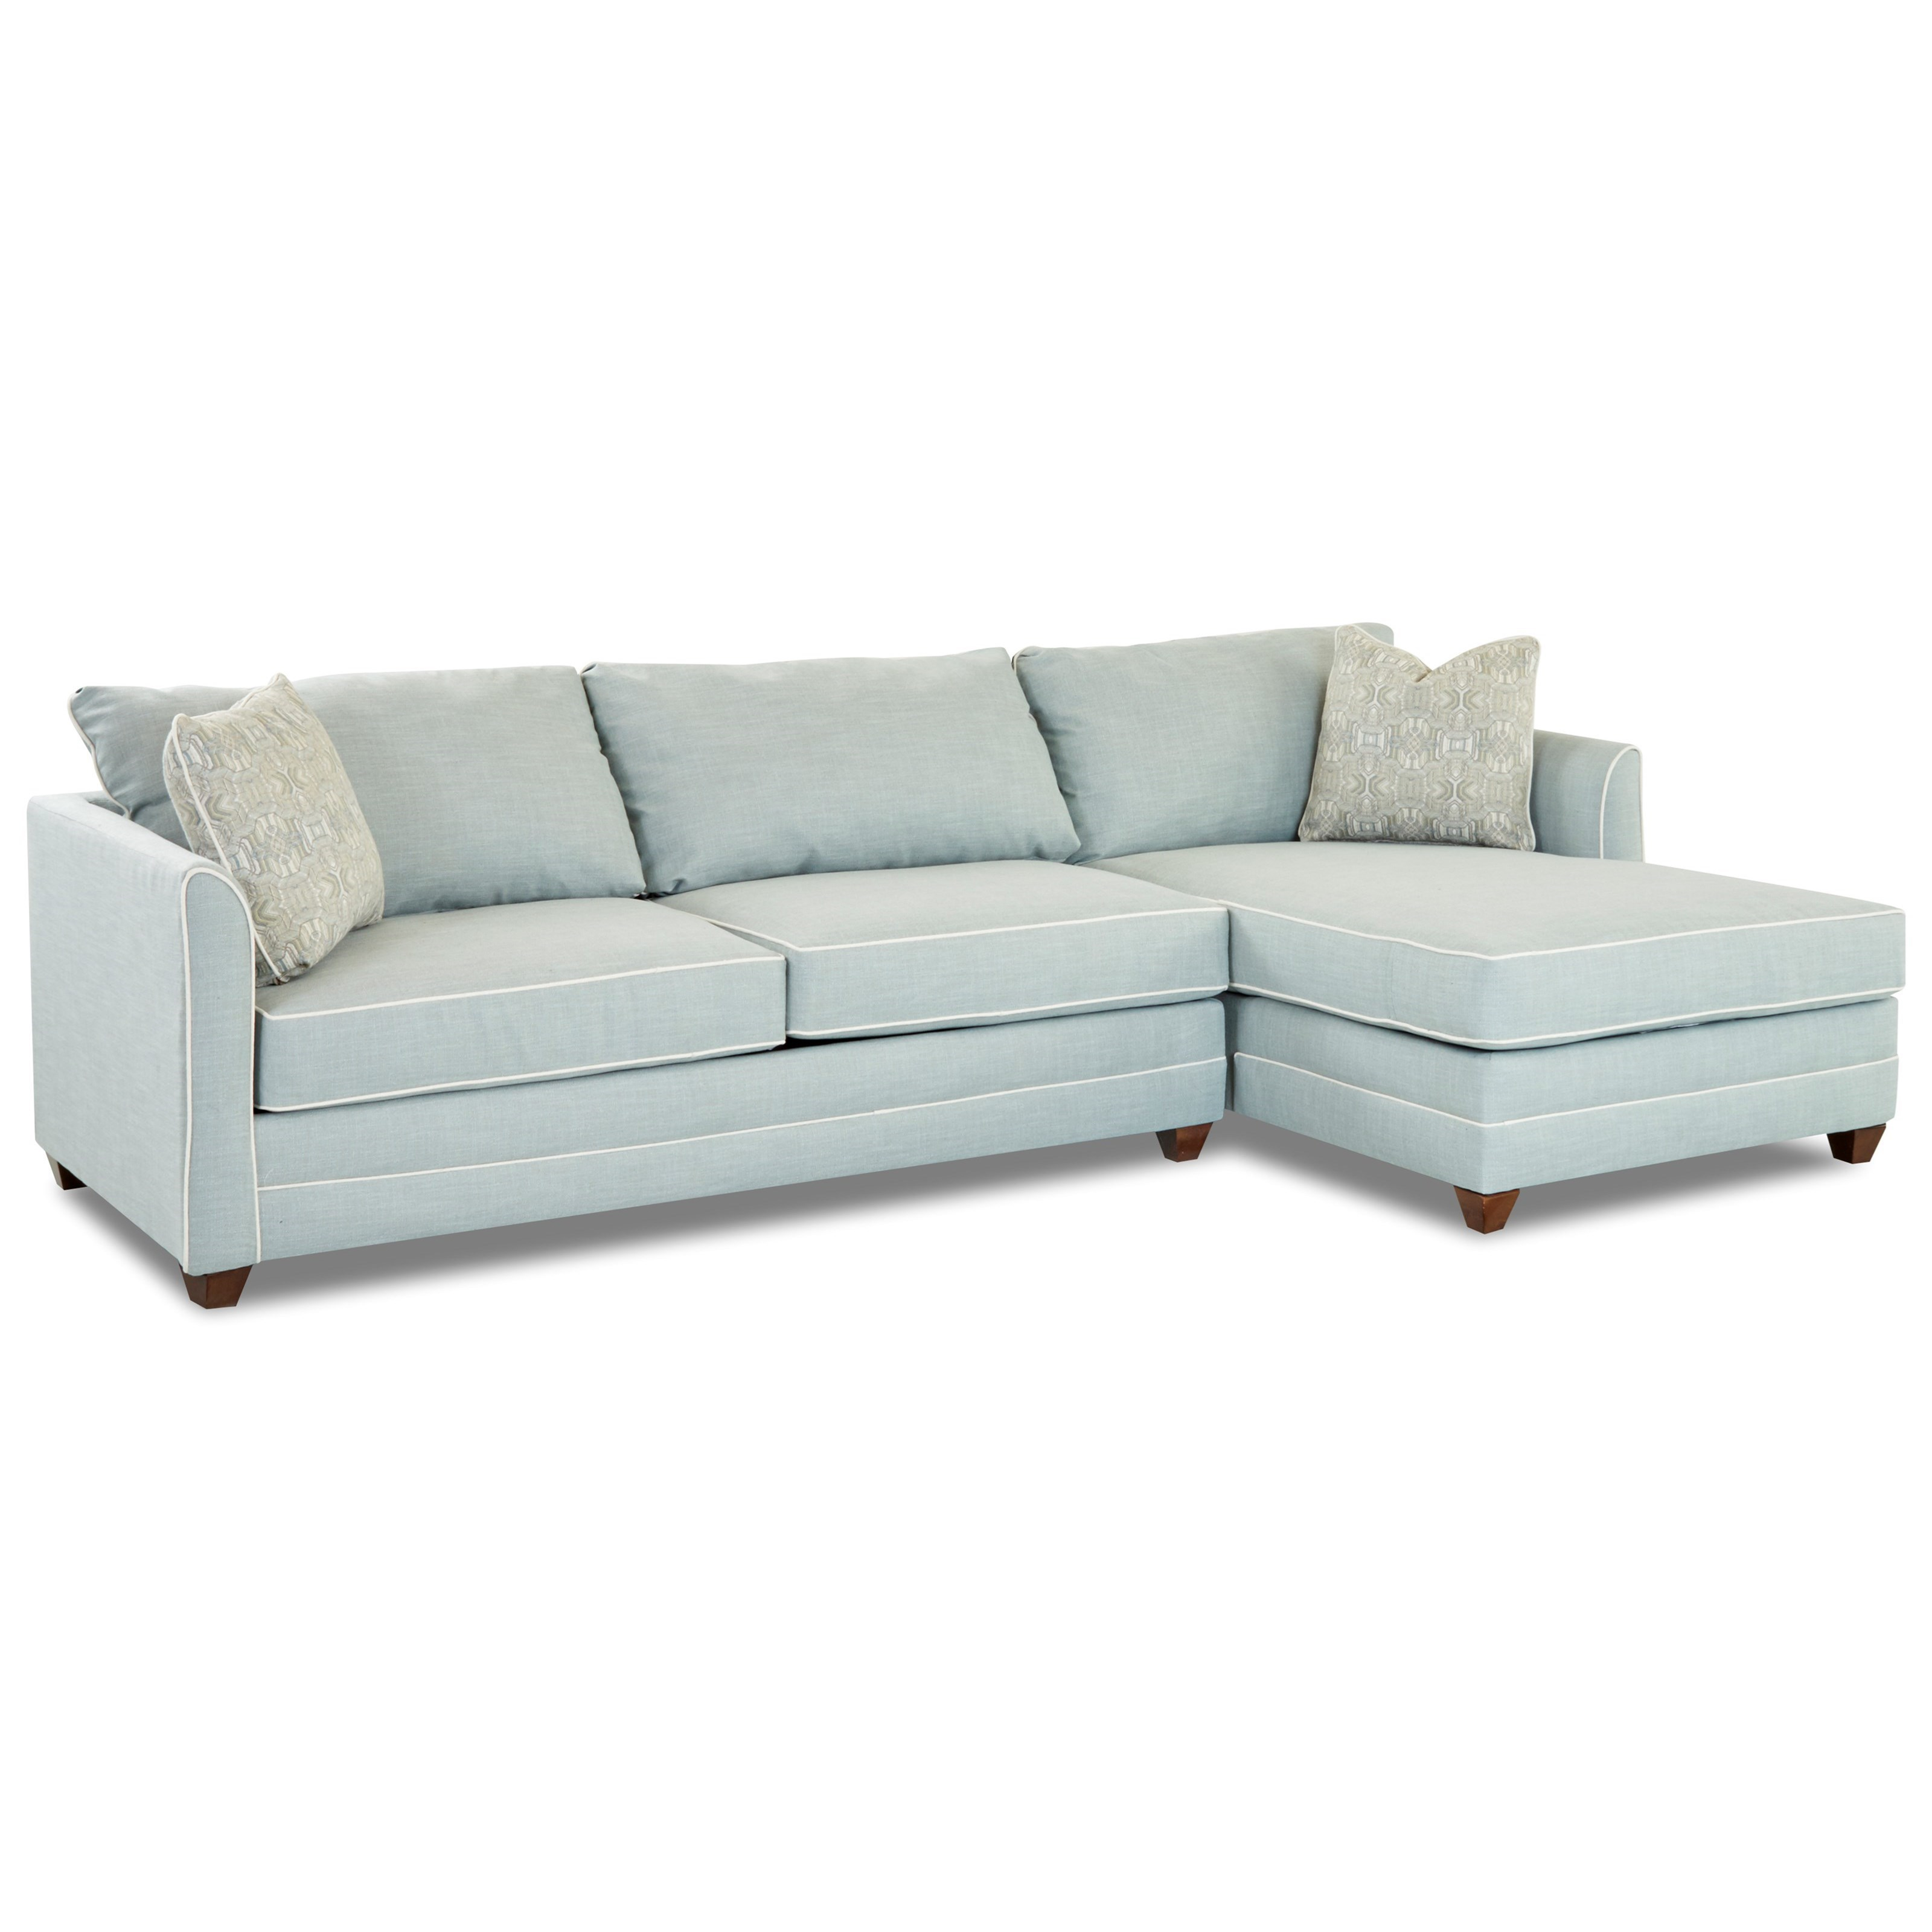 Klaussner Tilly Two Piece Sectional Sofa With LAF Sleeper Sofa And Enso Memory  Foam Mattress | Dunk U0026 Bright Furniture | Sectional Sofas